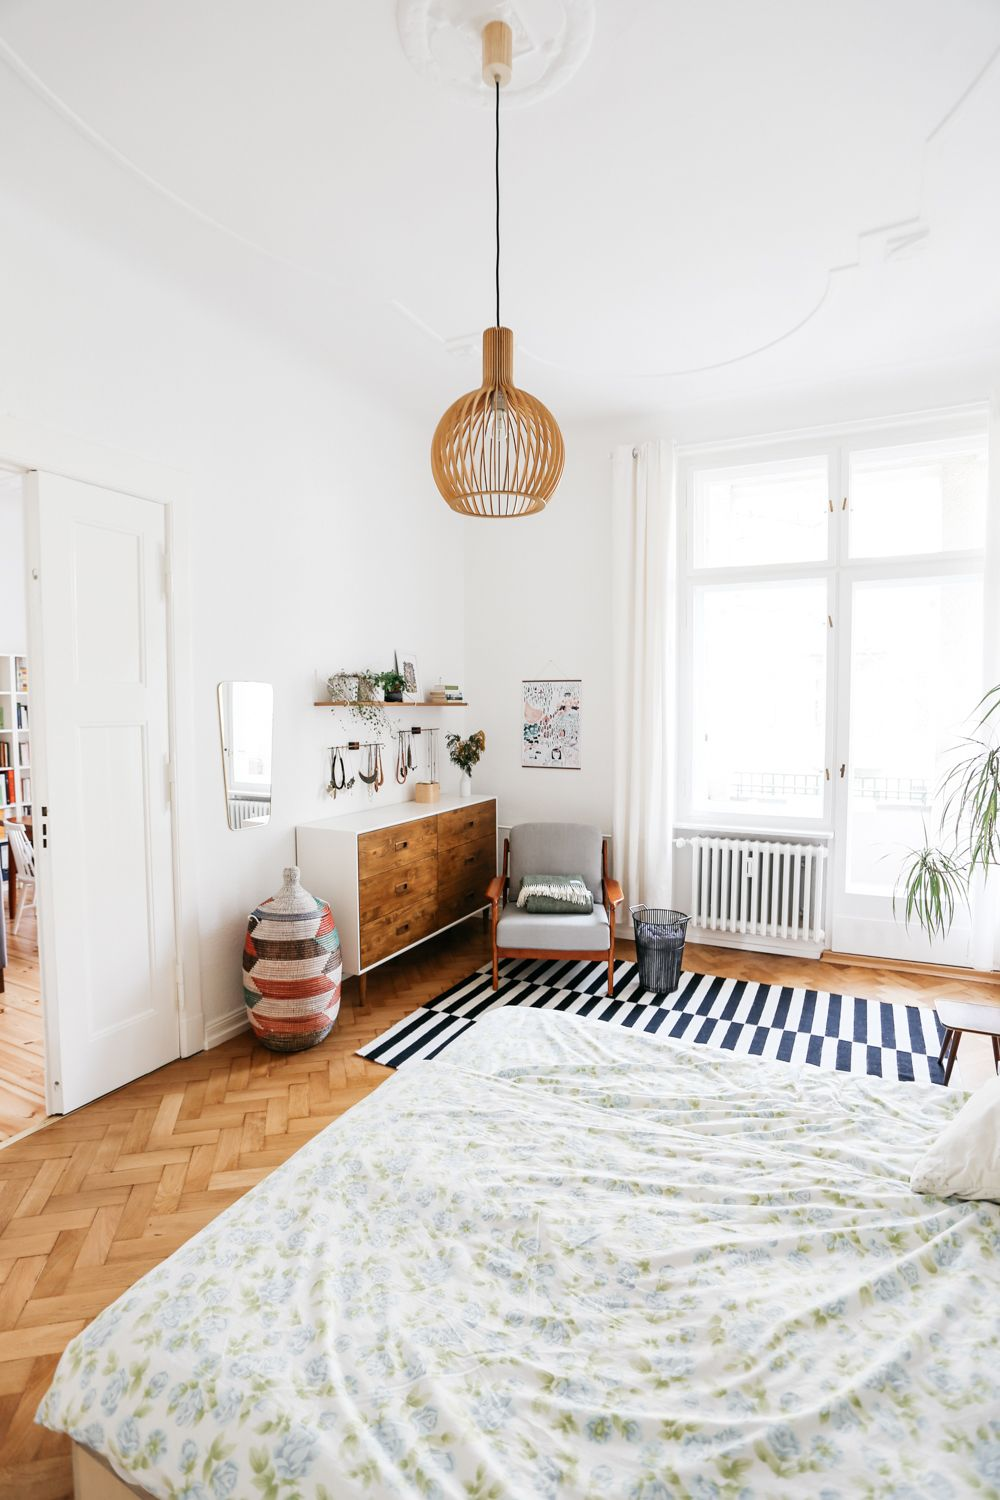 Bedroom Interior From Home Of Nicole Florian In Berlin